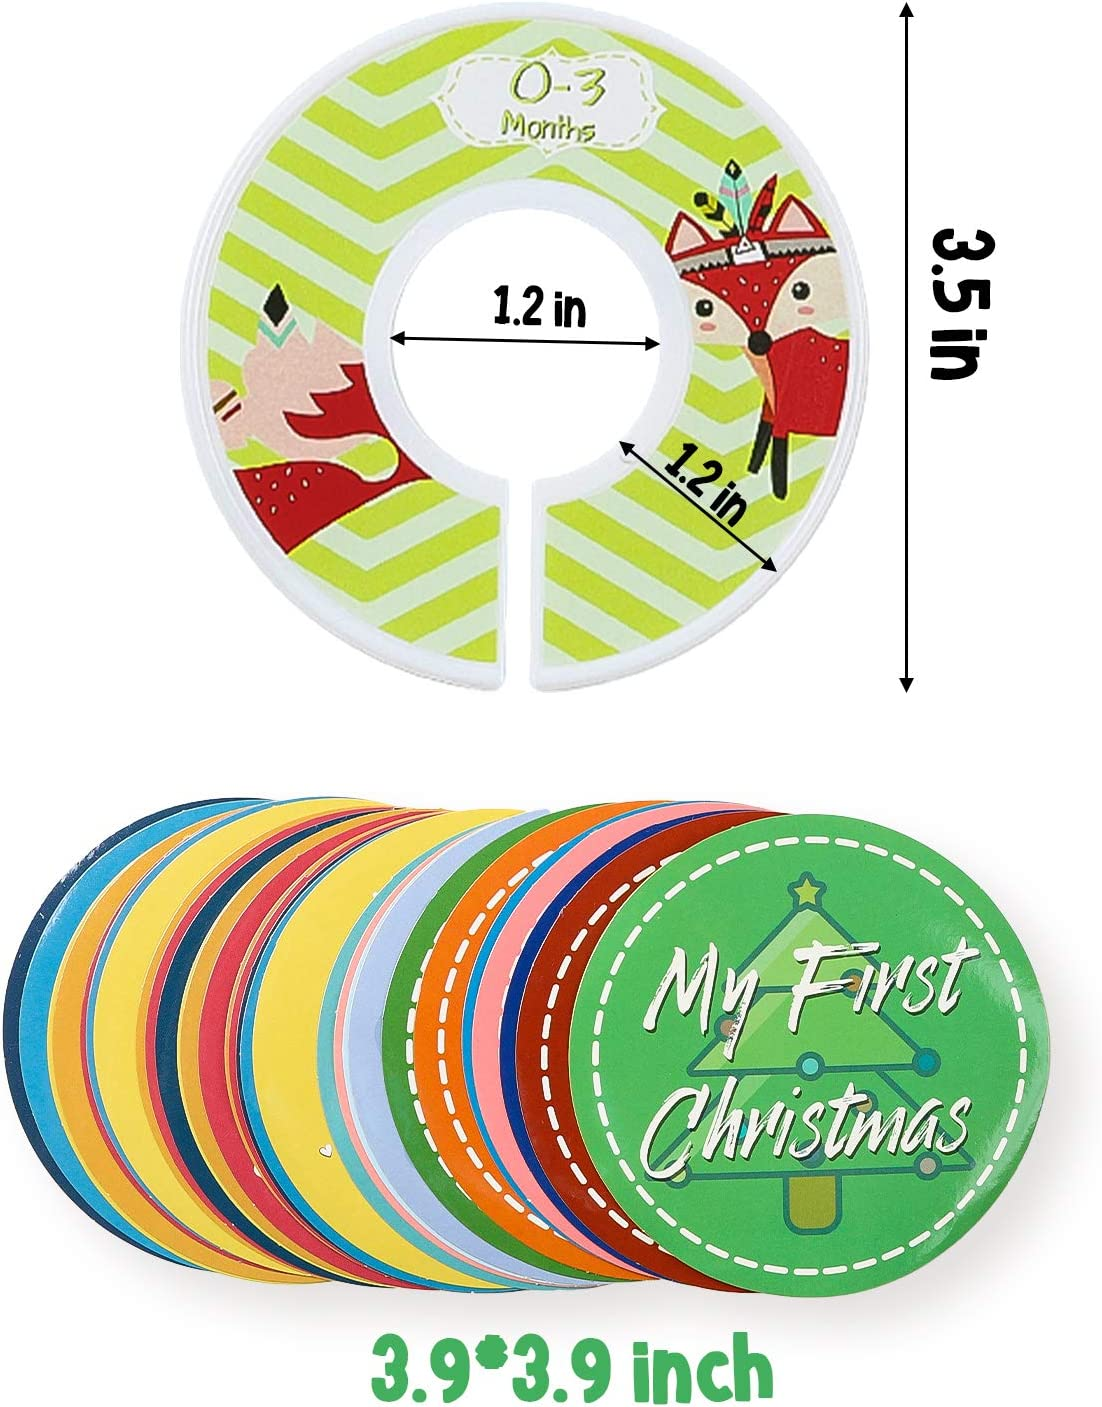 R HORSE Baby Closet Size Dividers Set of 12Pcs Nursery Closet Clothes Dividers and 32Pcs Newborn Stickers Toddler Decor Clothes Size Dividers with Pre-Printed and Blank Size Dividers for Boy Girl